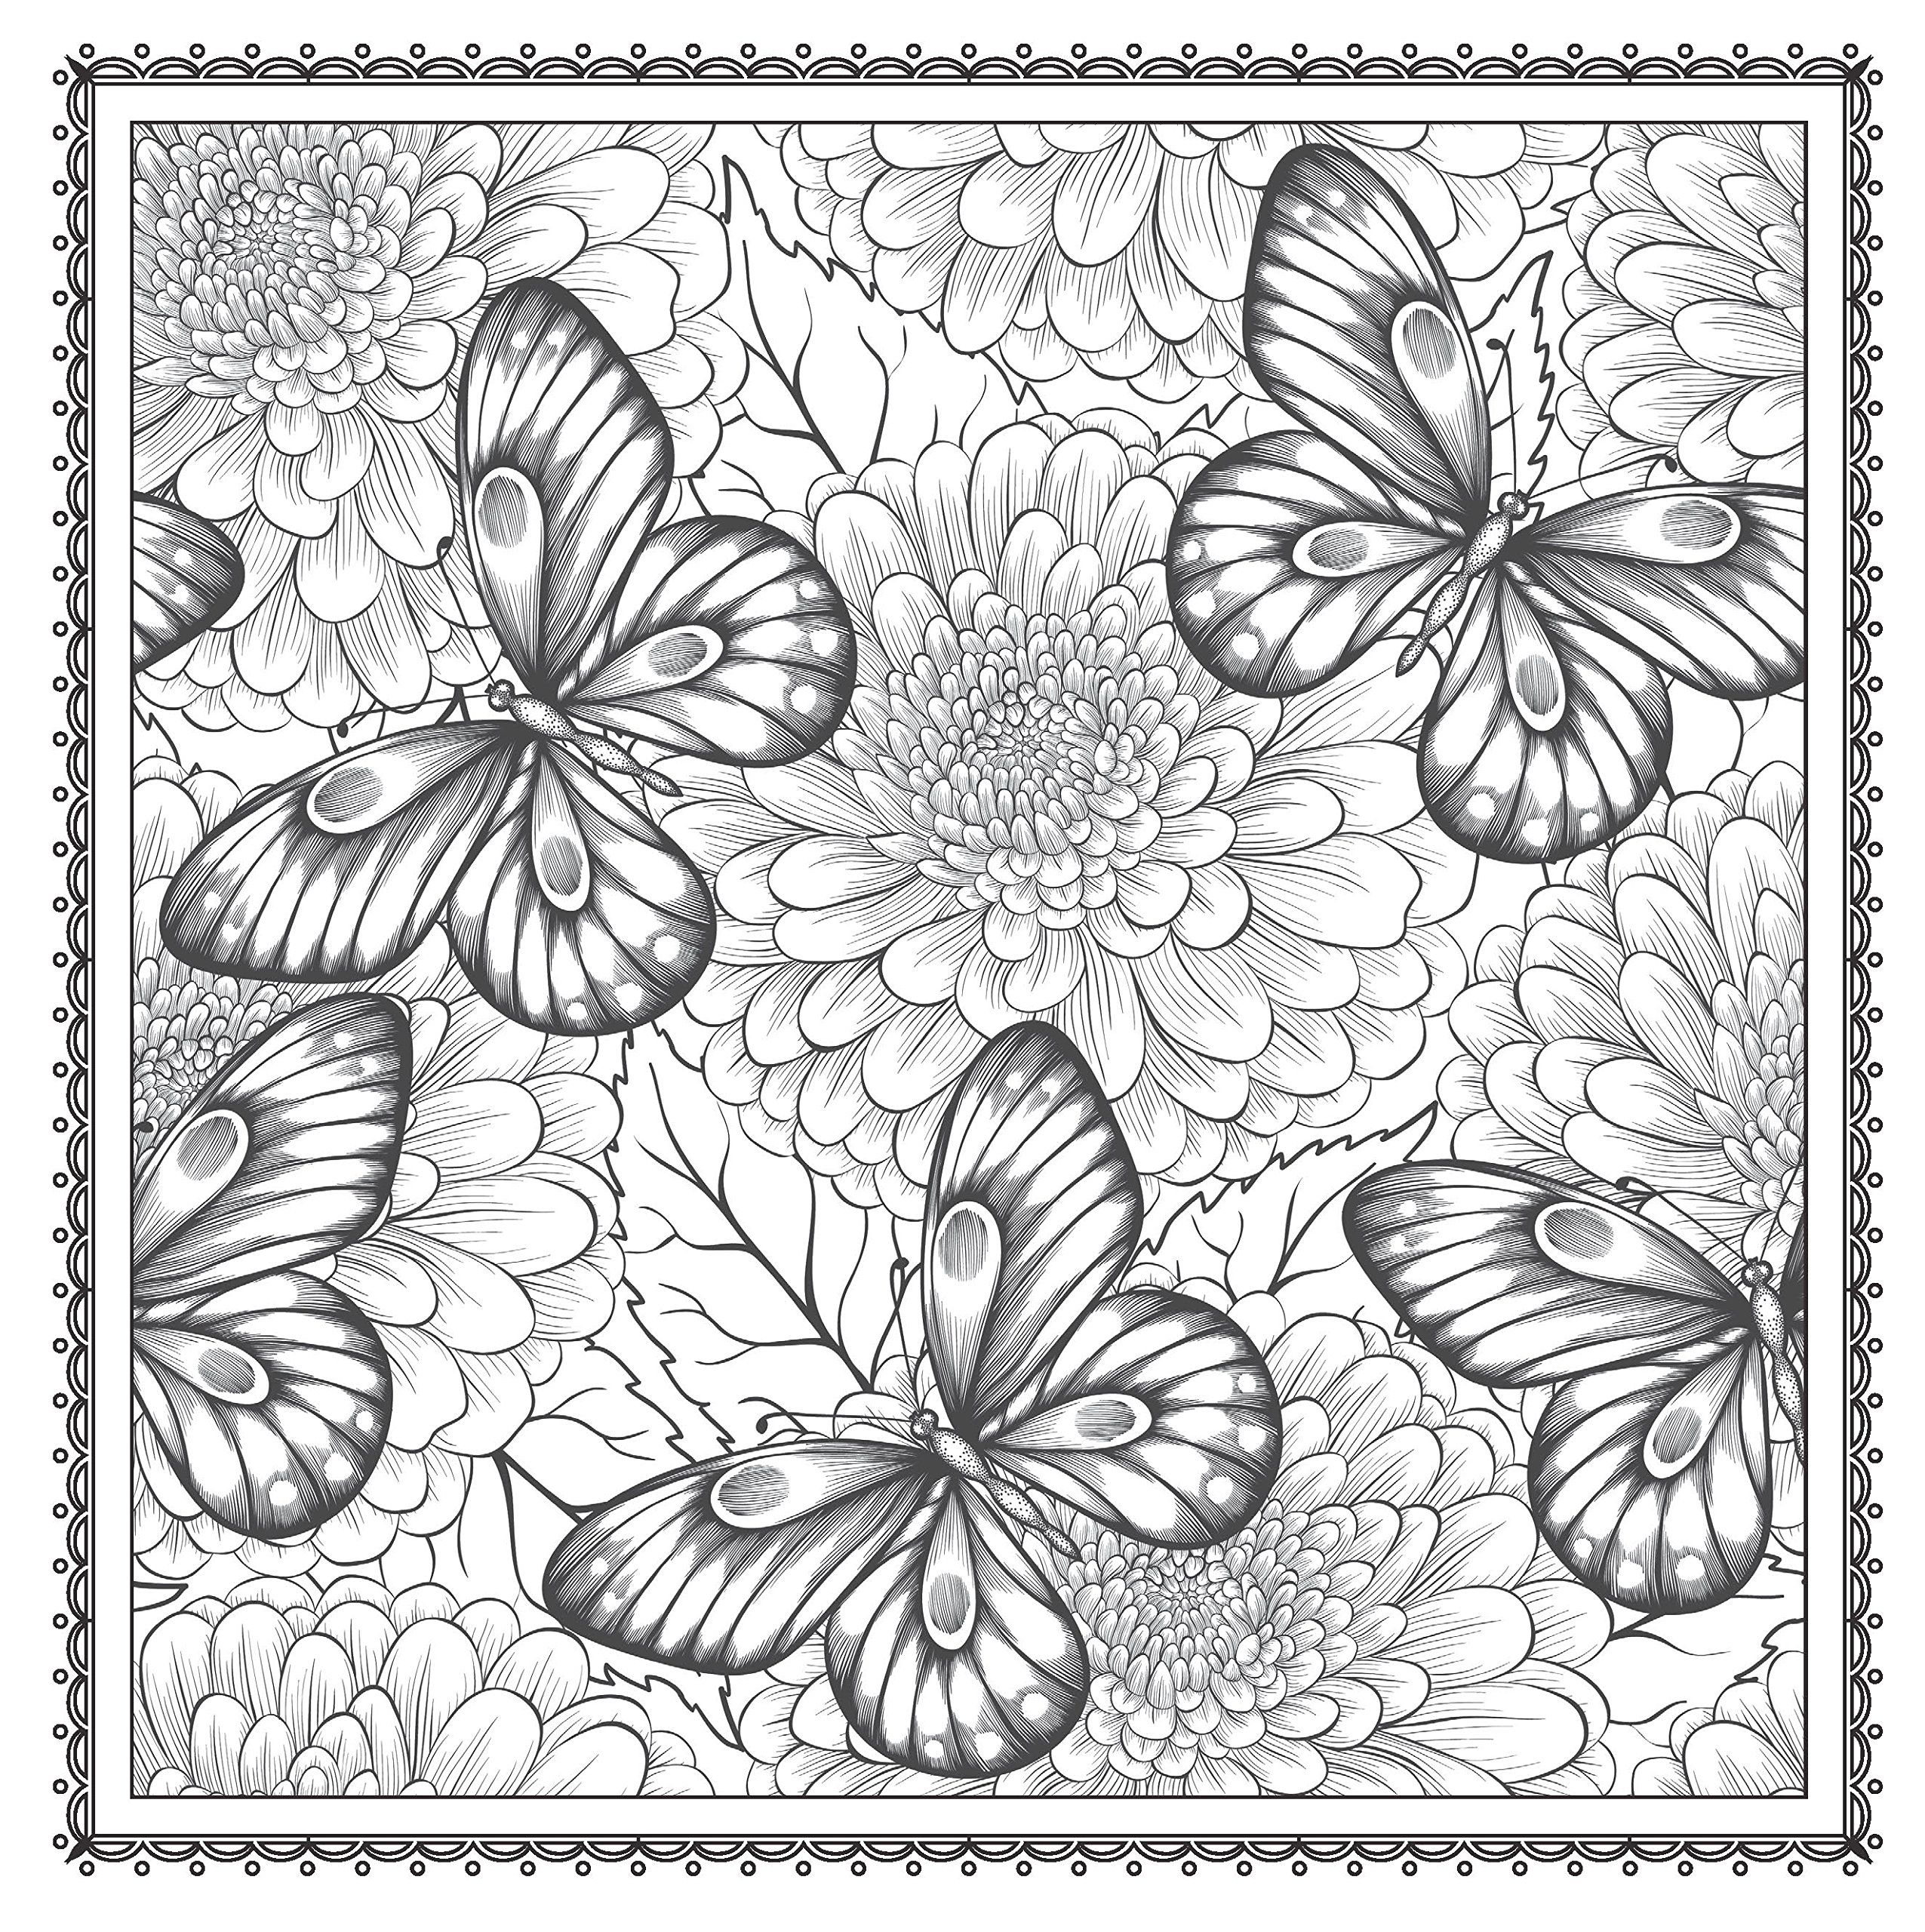 adult coloring pages patterns - adult coloring pages patterns